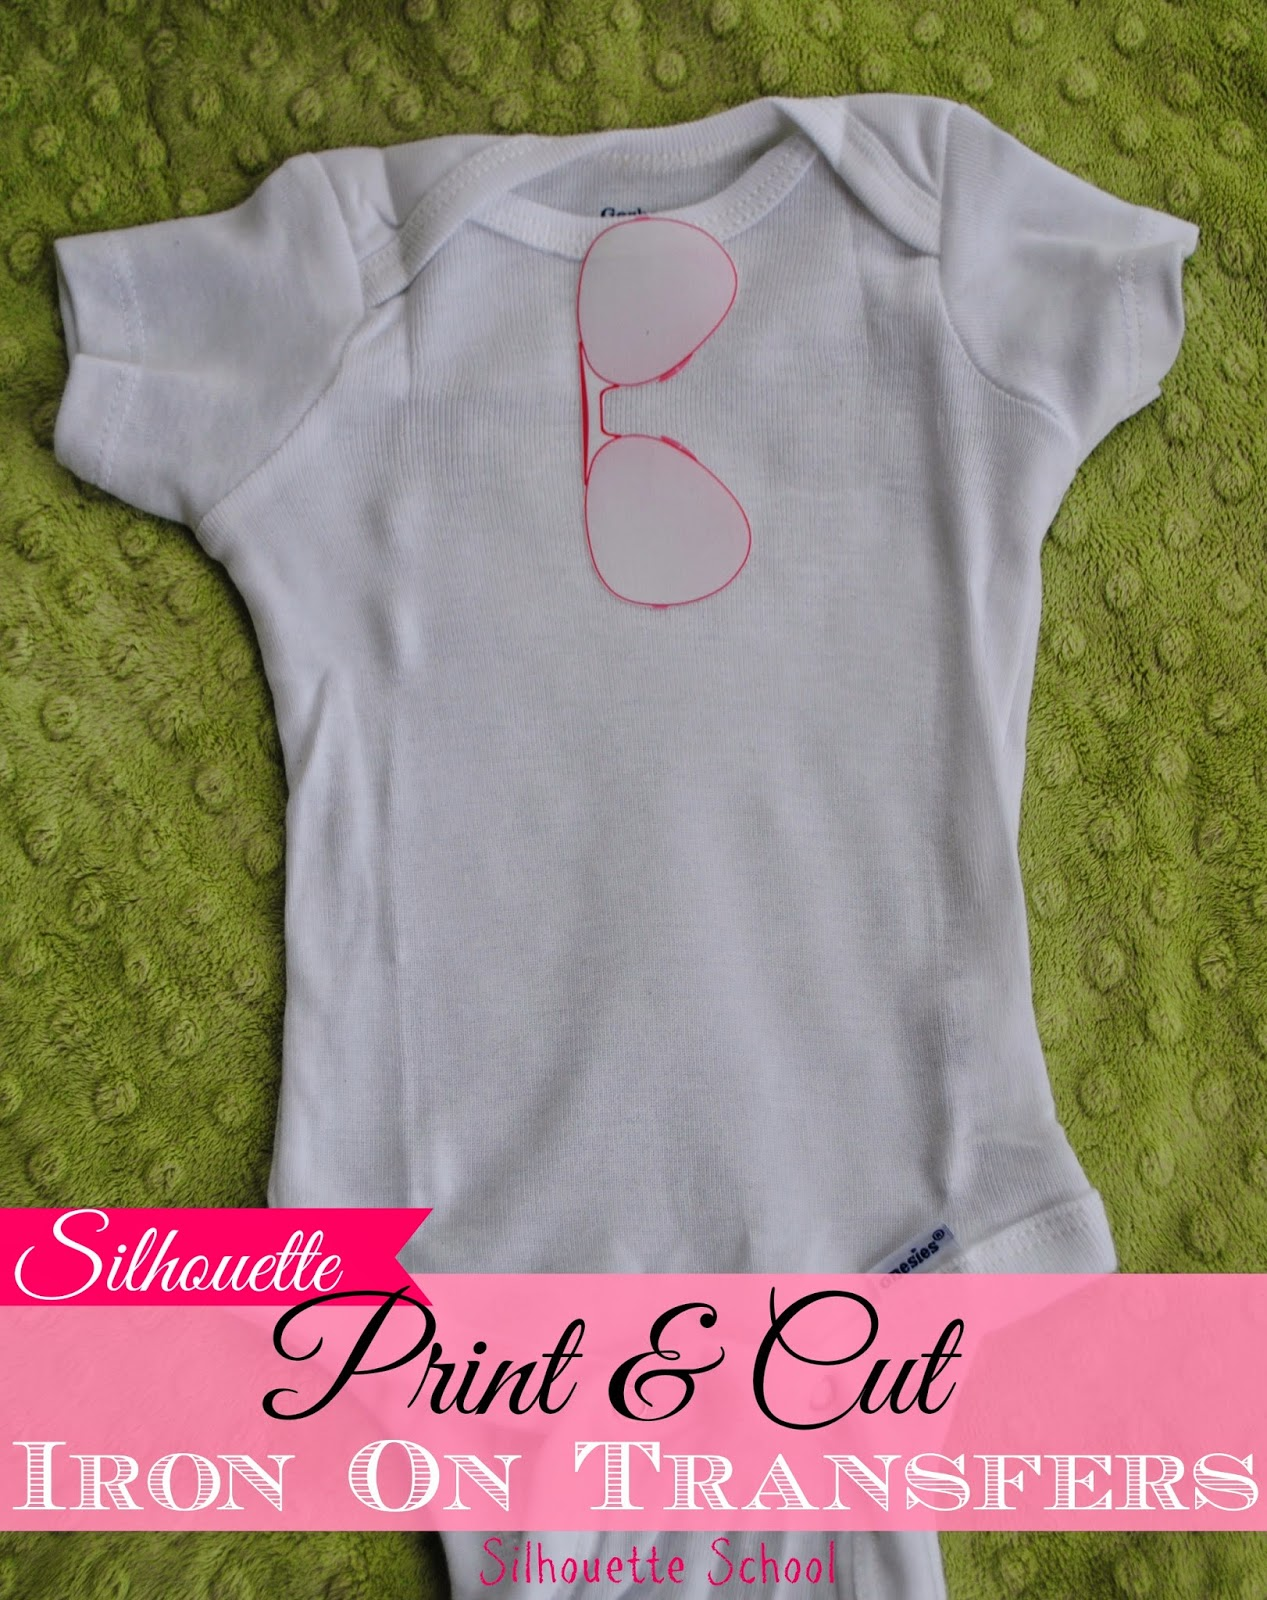 Silhouette, print and cut, heat transfer, iron on, Silhouette tutorial